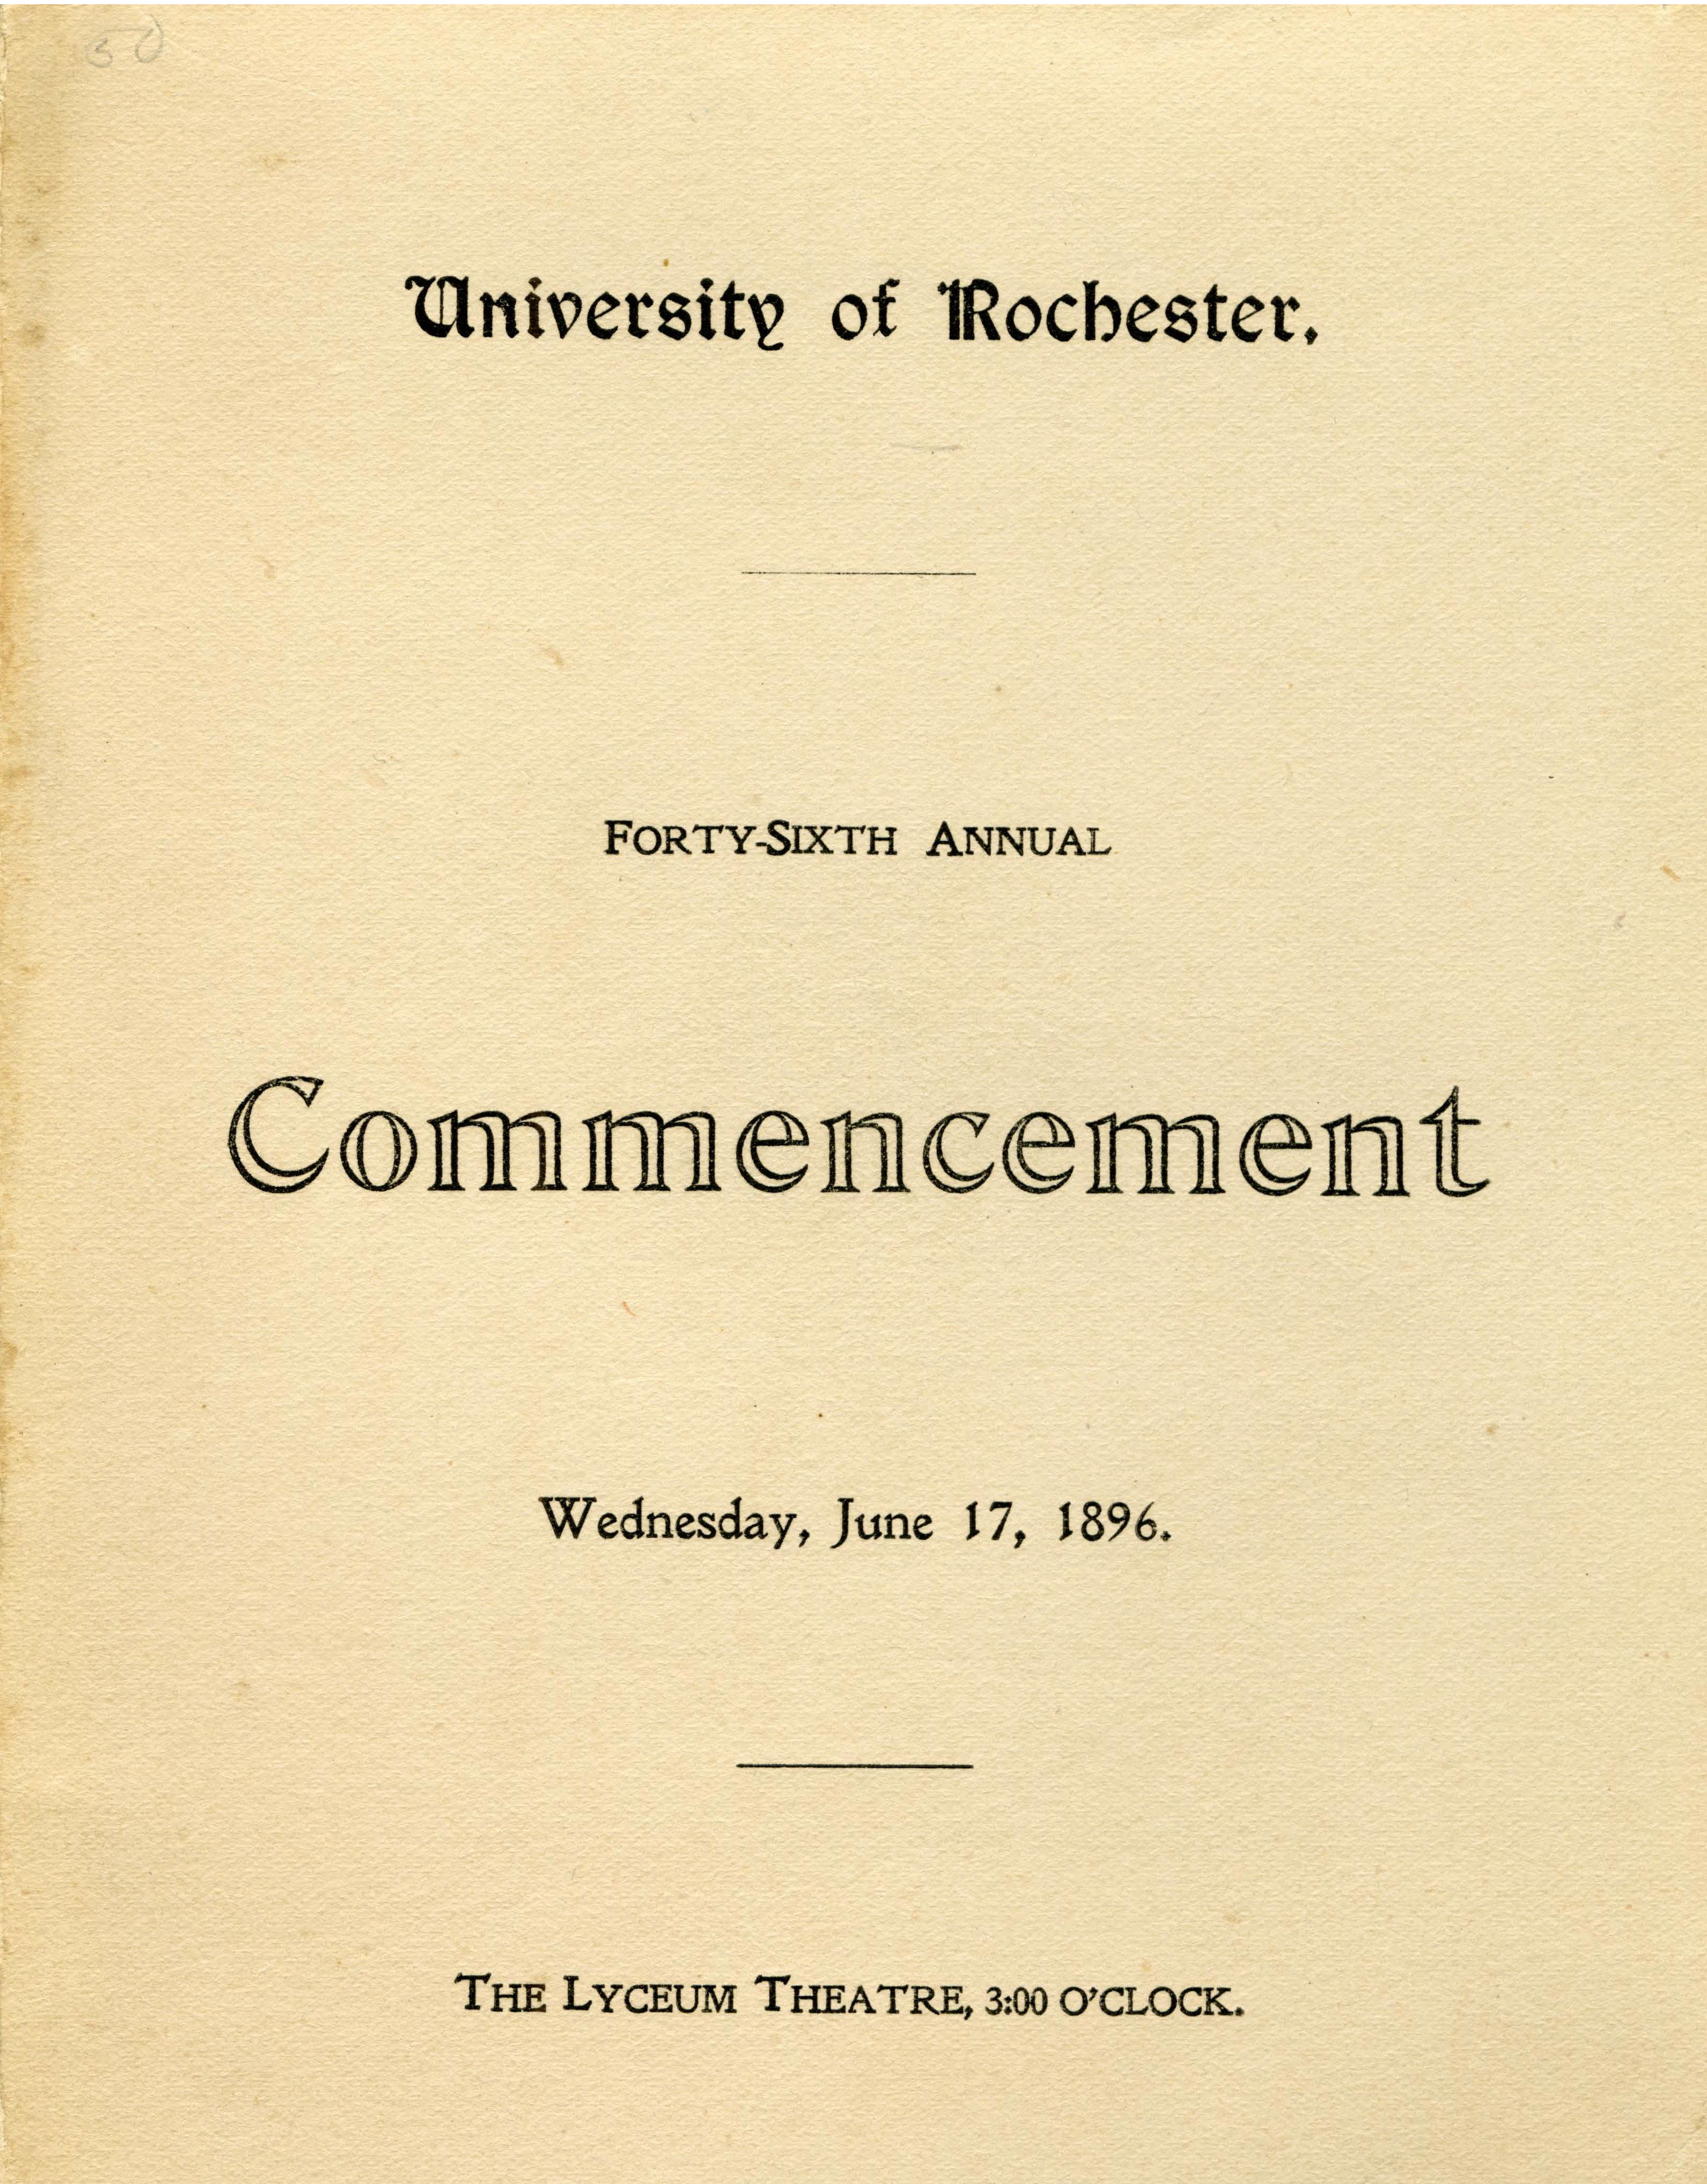 Commencement program, 1896